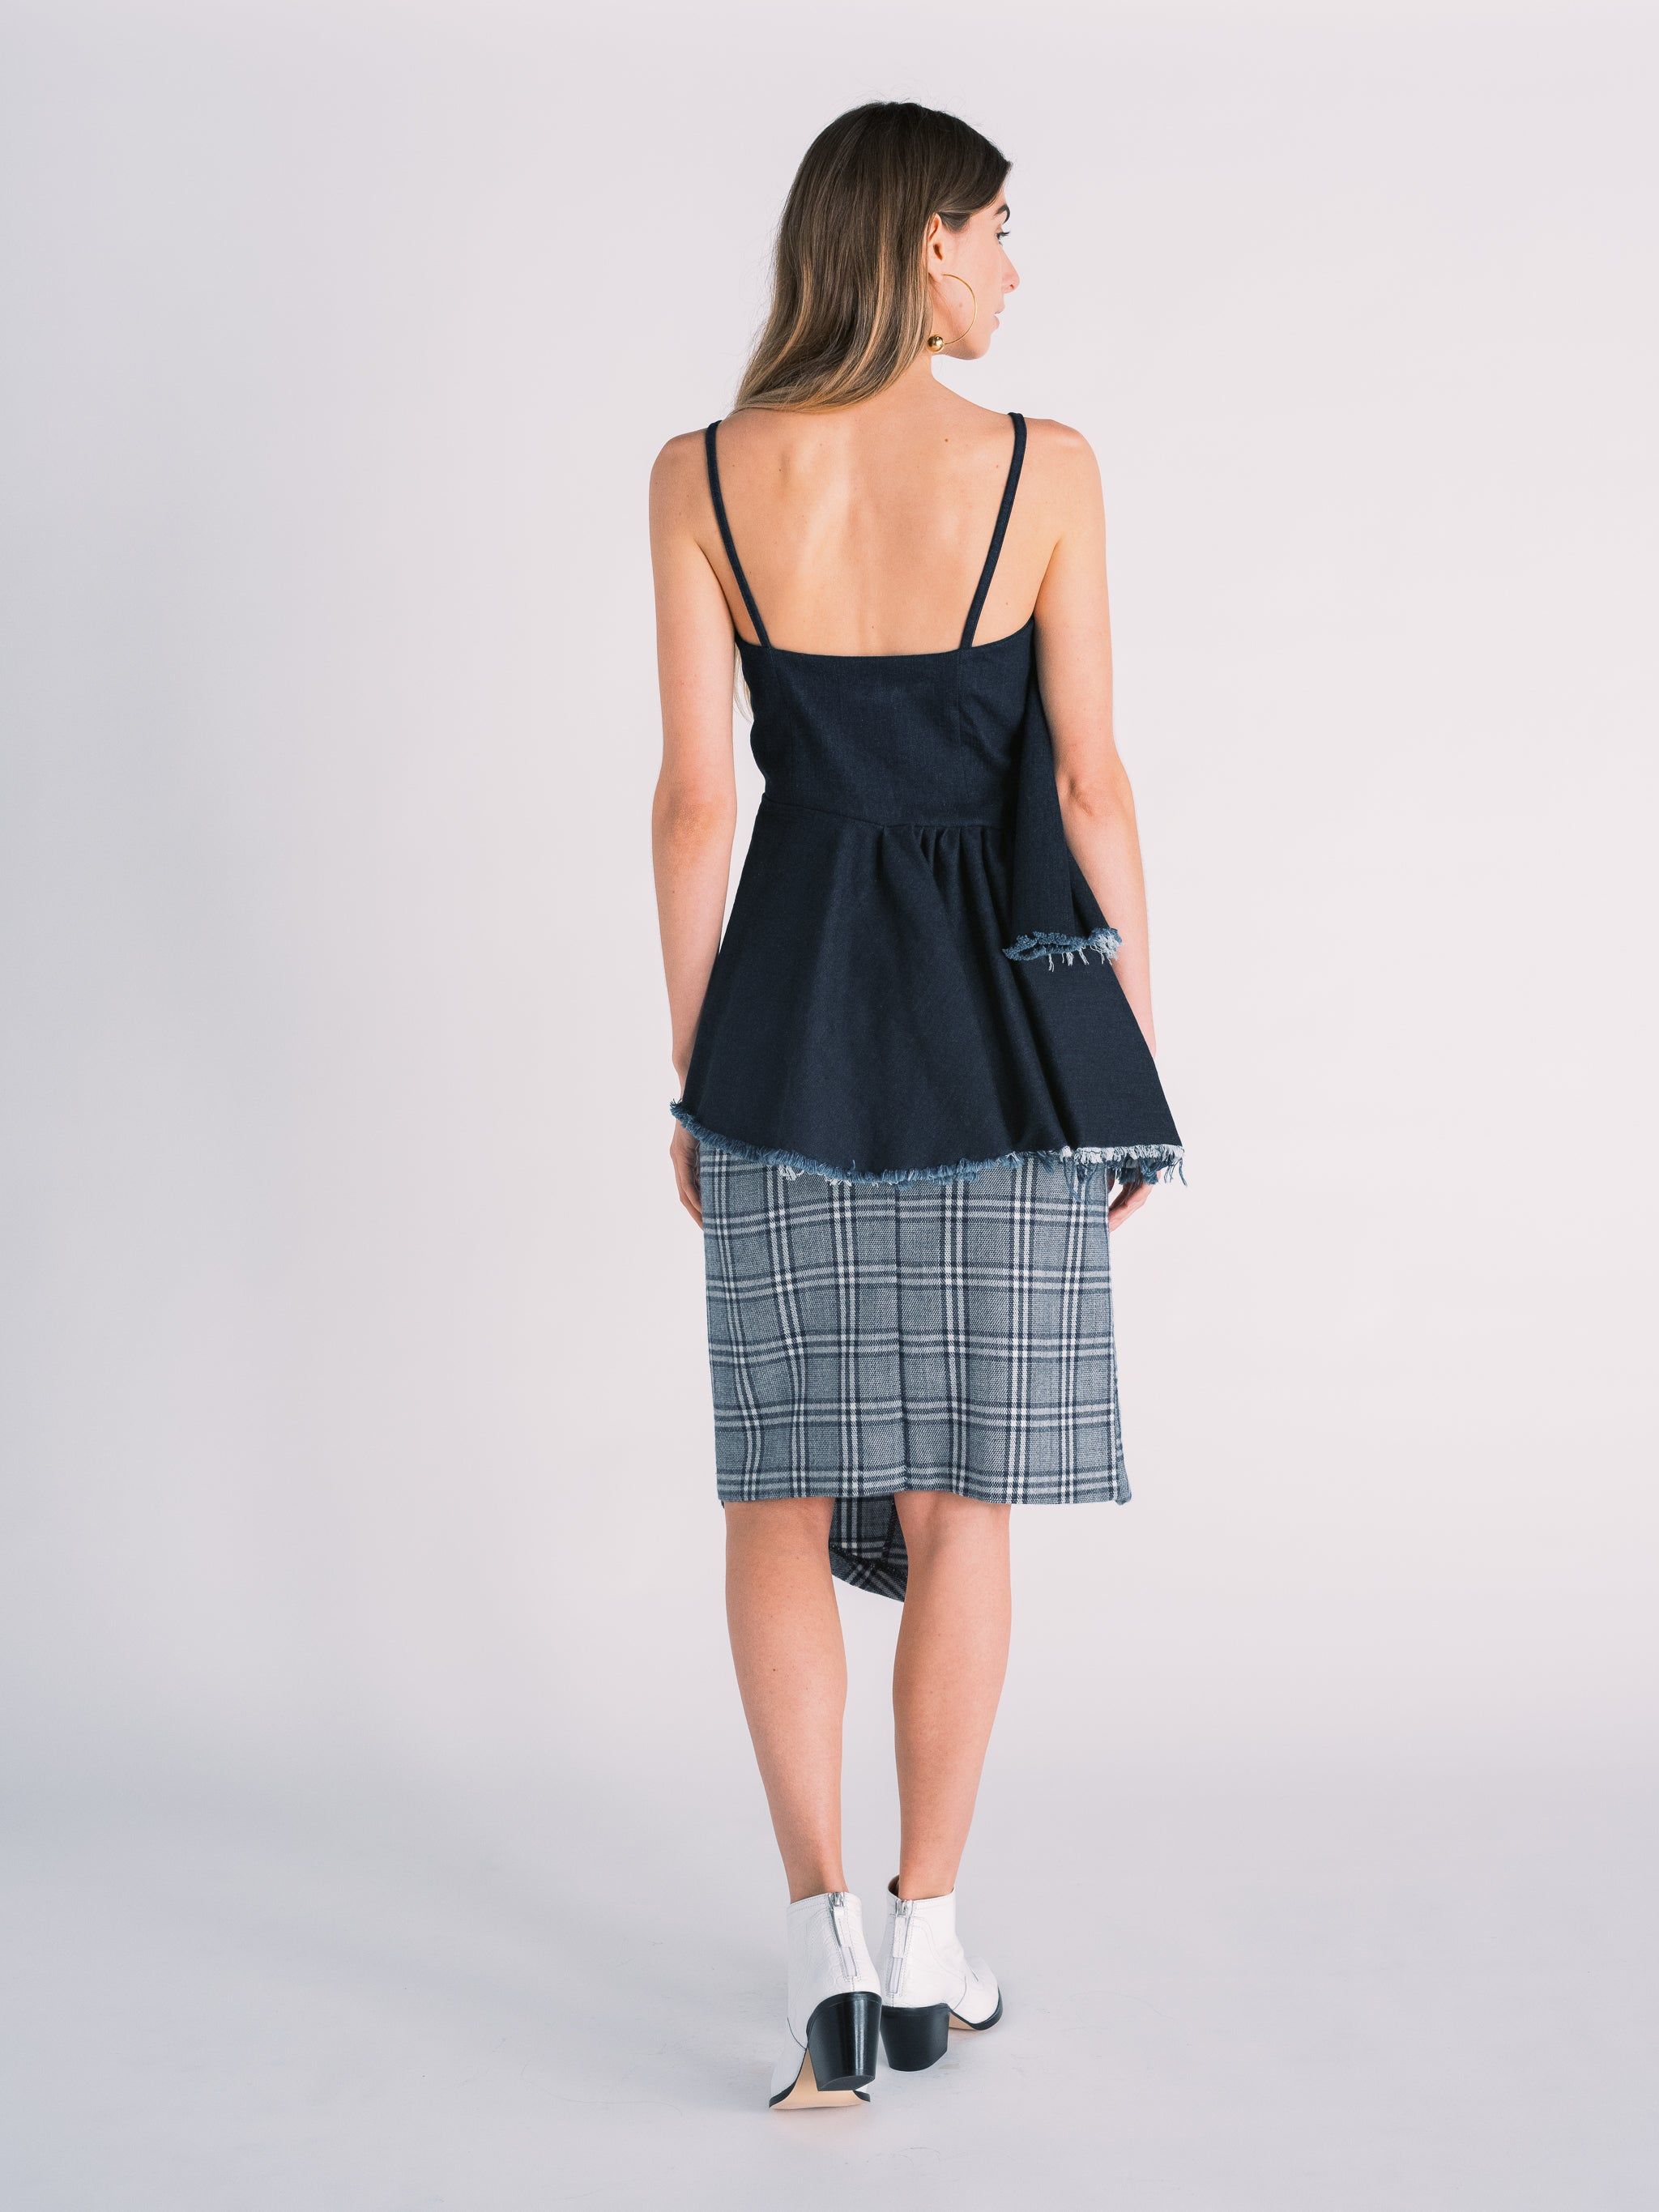 Asymmetric Ruffled Top in Dark Navy Denim